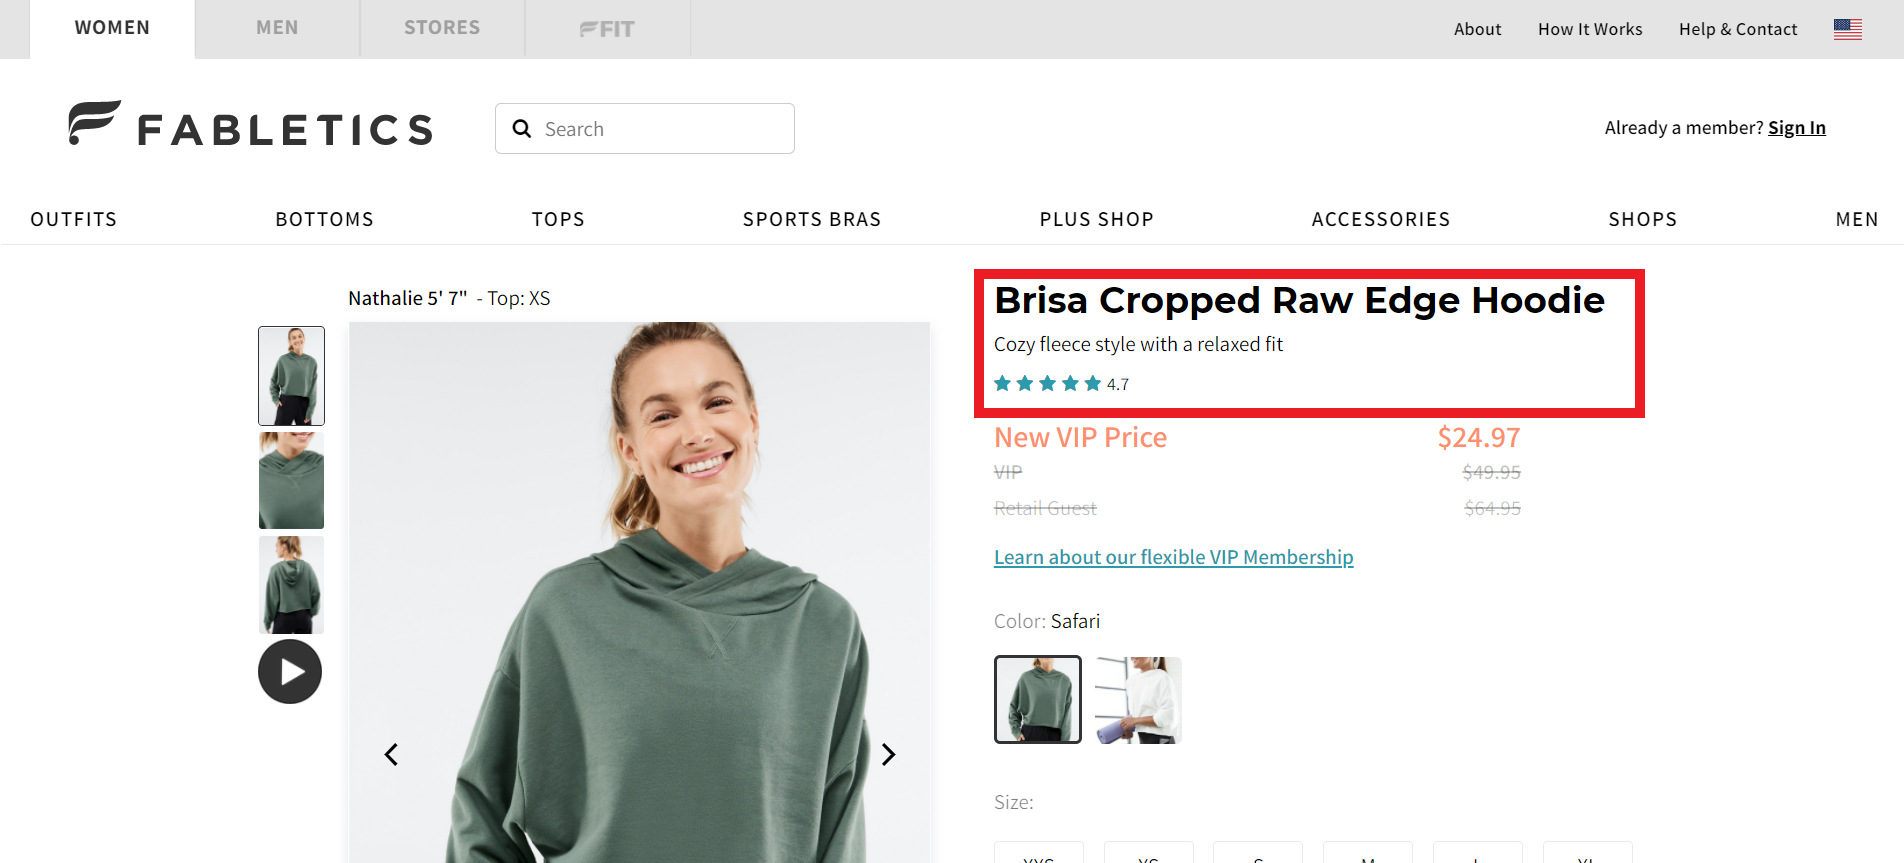 Product ratings can improve brand credibility and trust